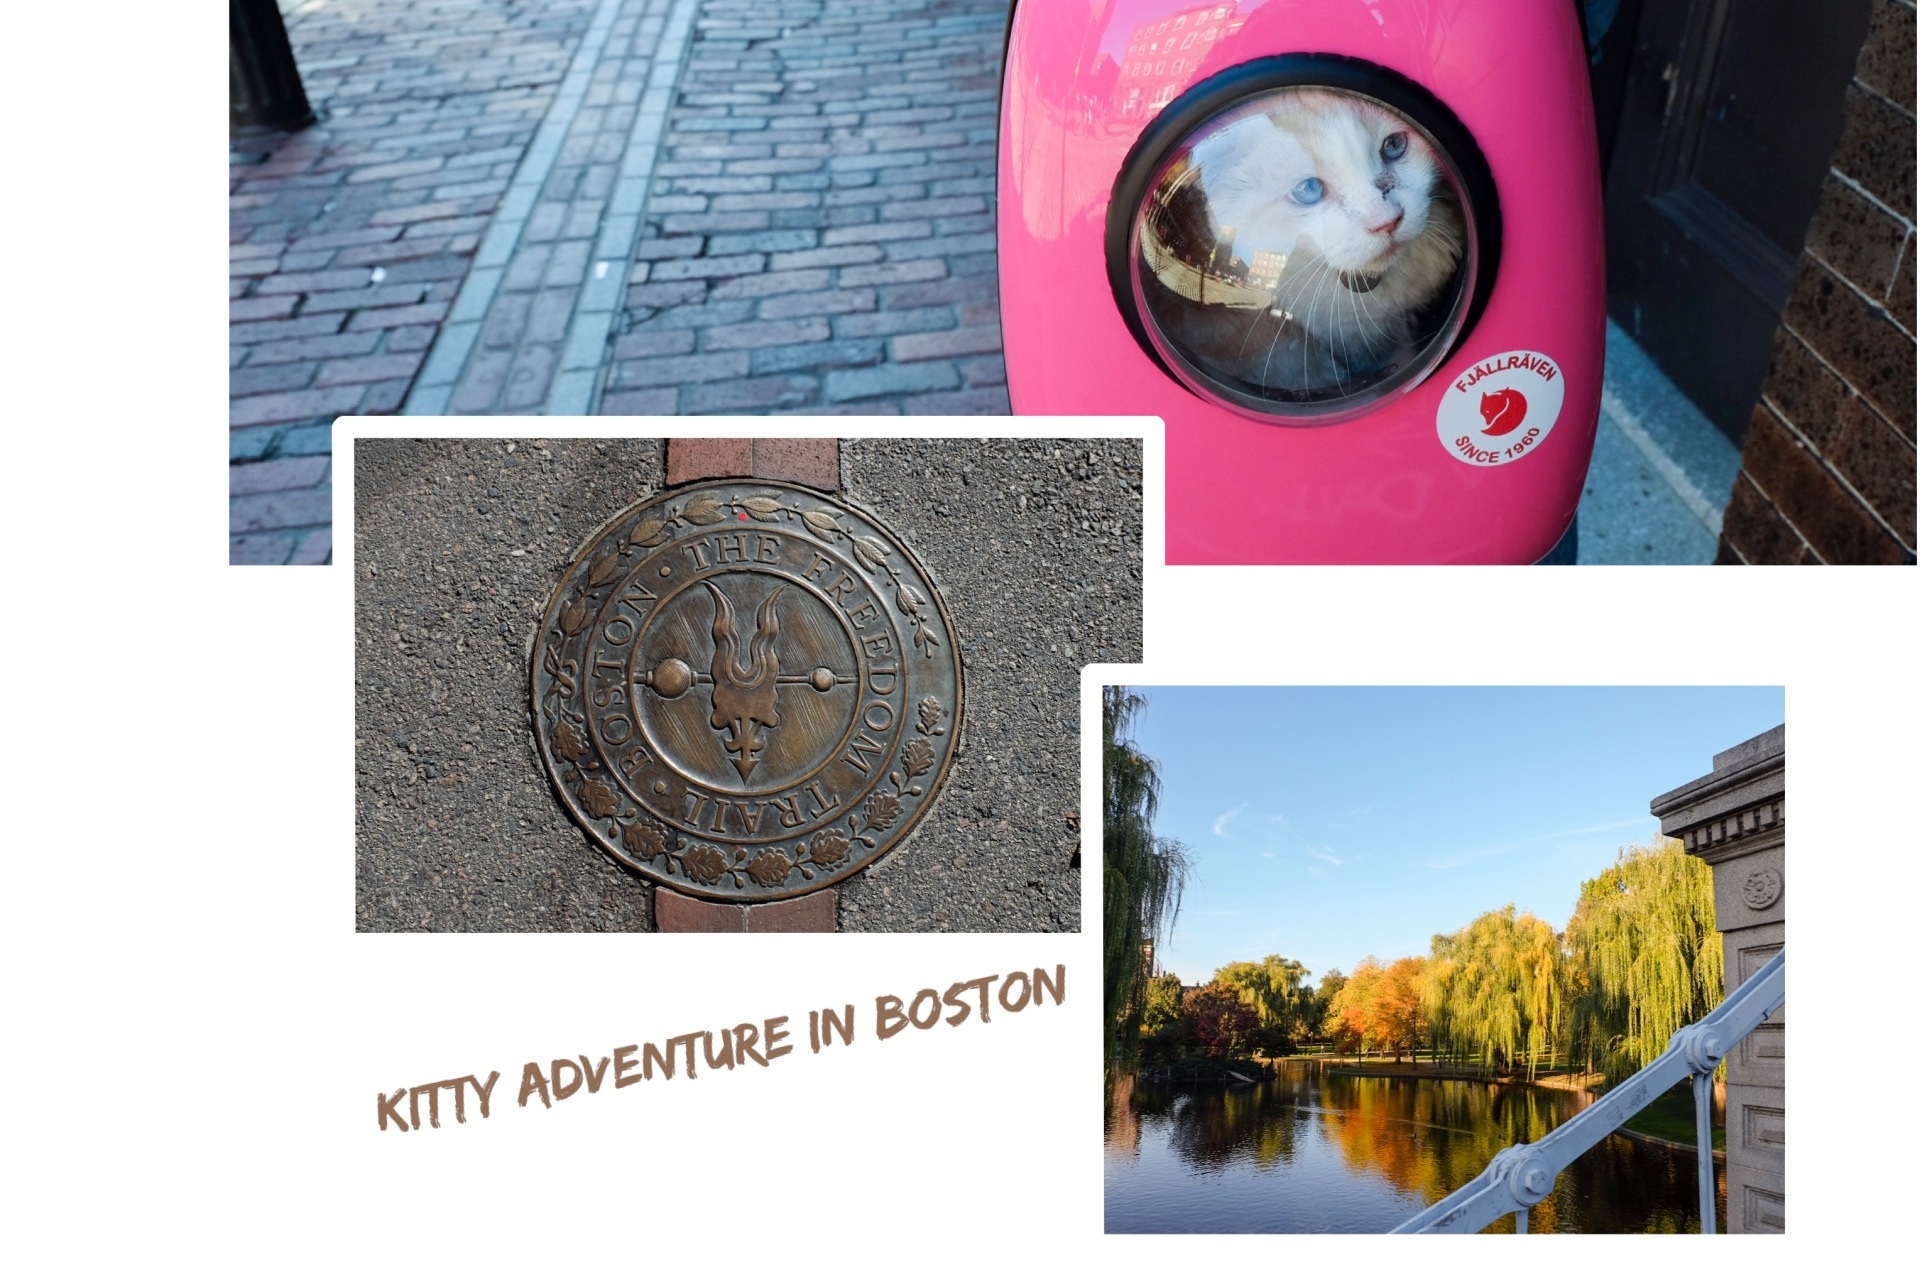 Kitty Adventure in Boston